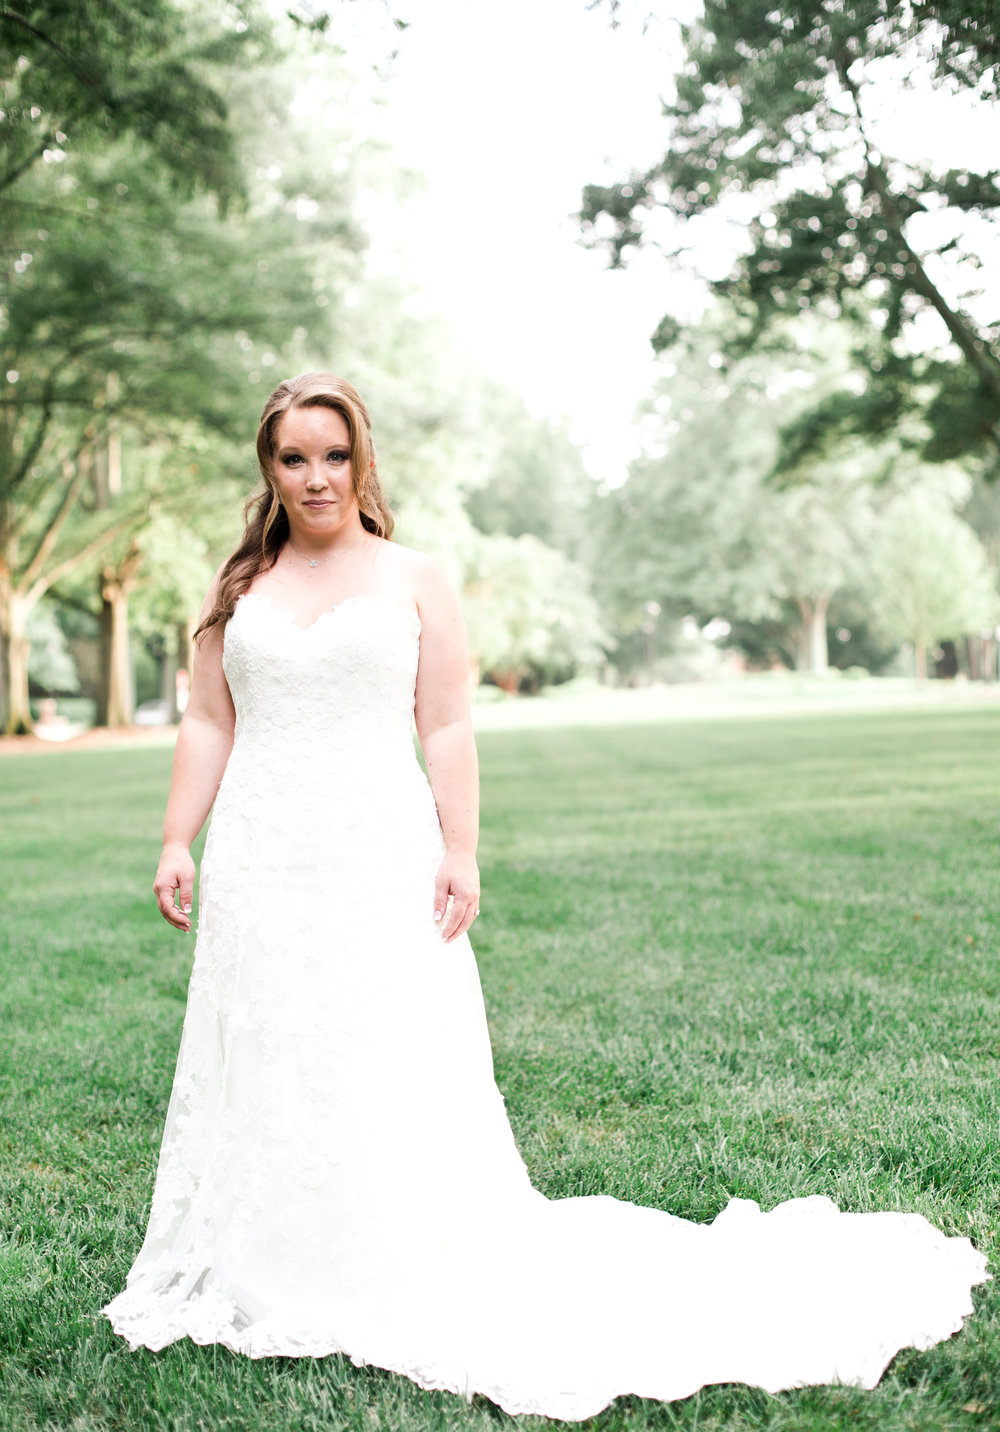 gabbie_bridal_poured_out_photography-43.jpg